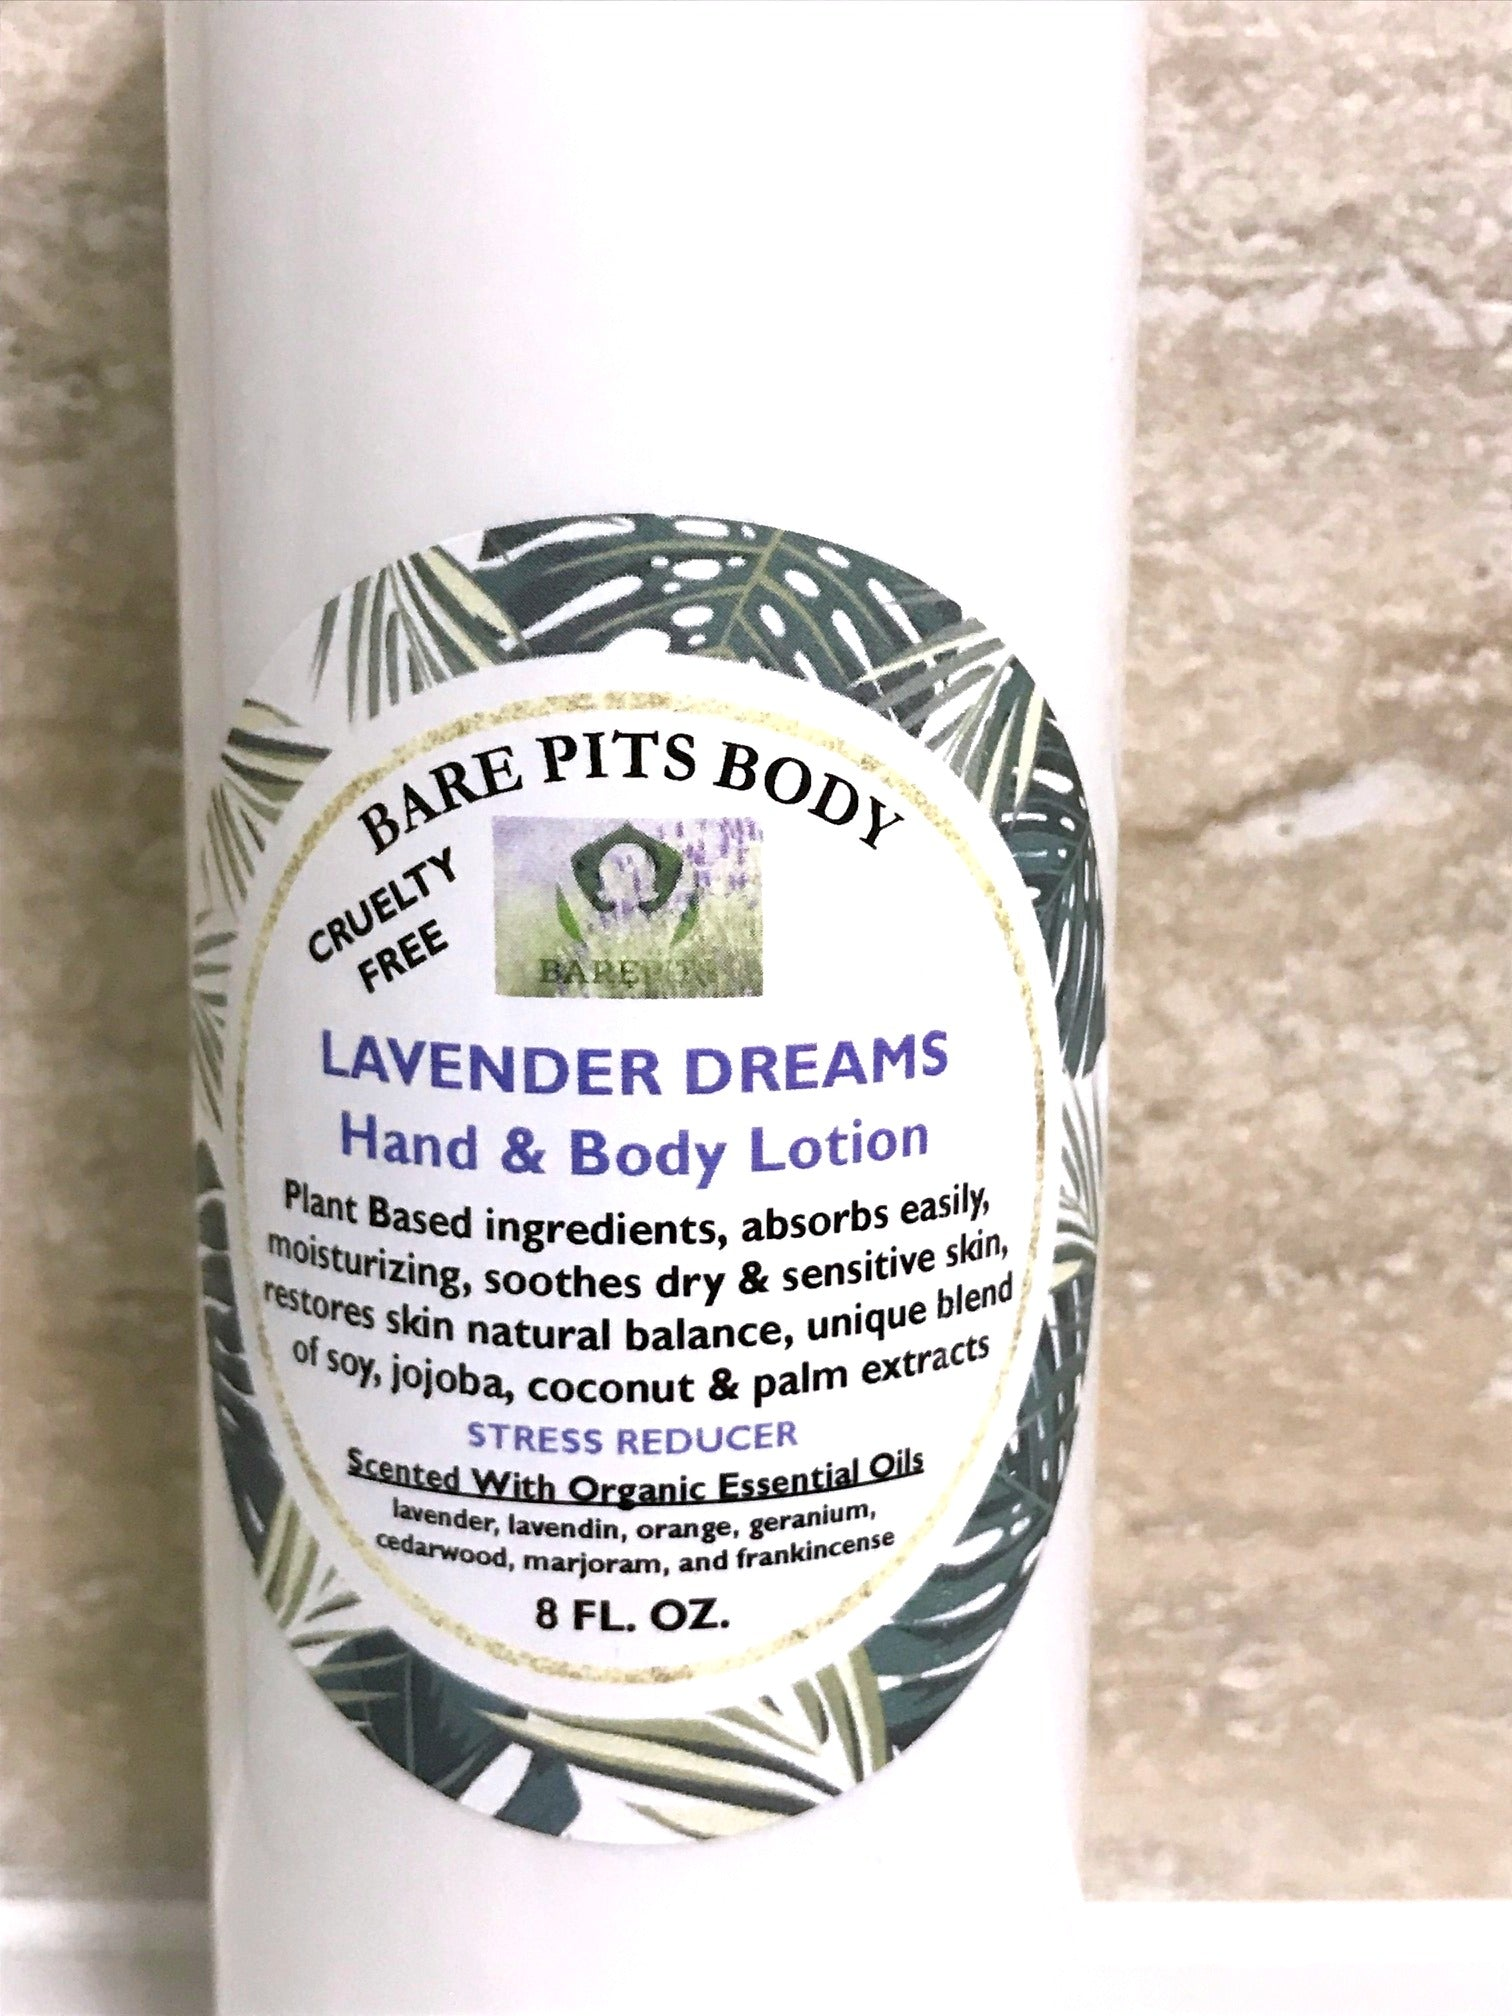 Vegan & Cruelty Free Body Lotion